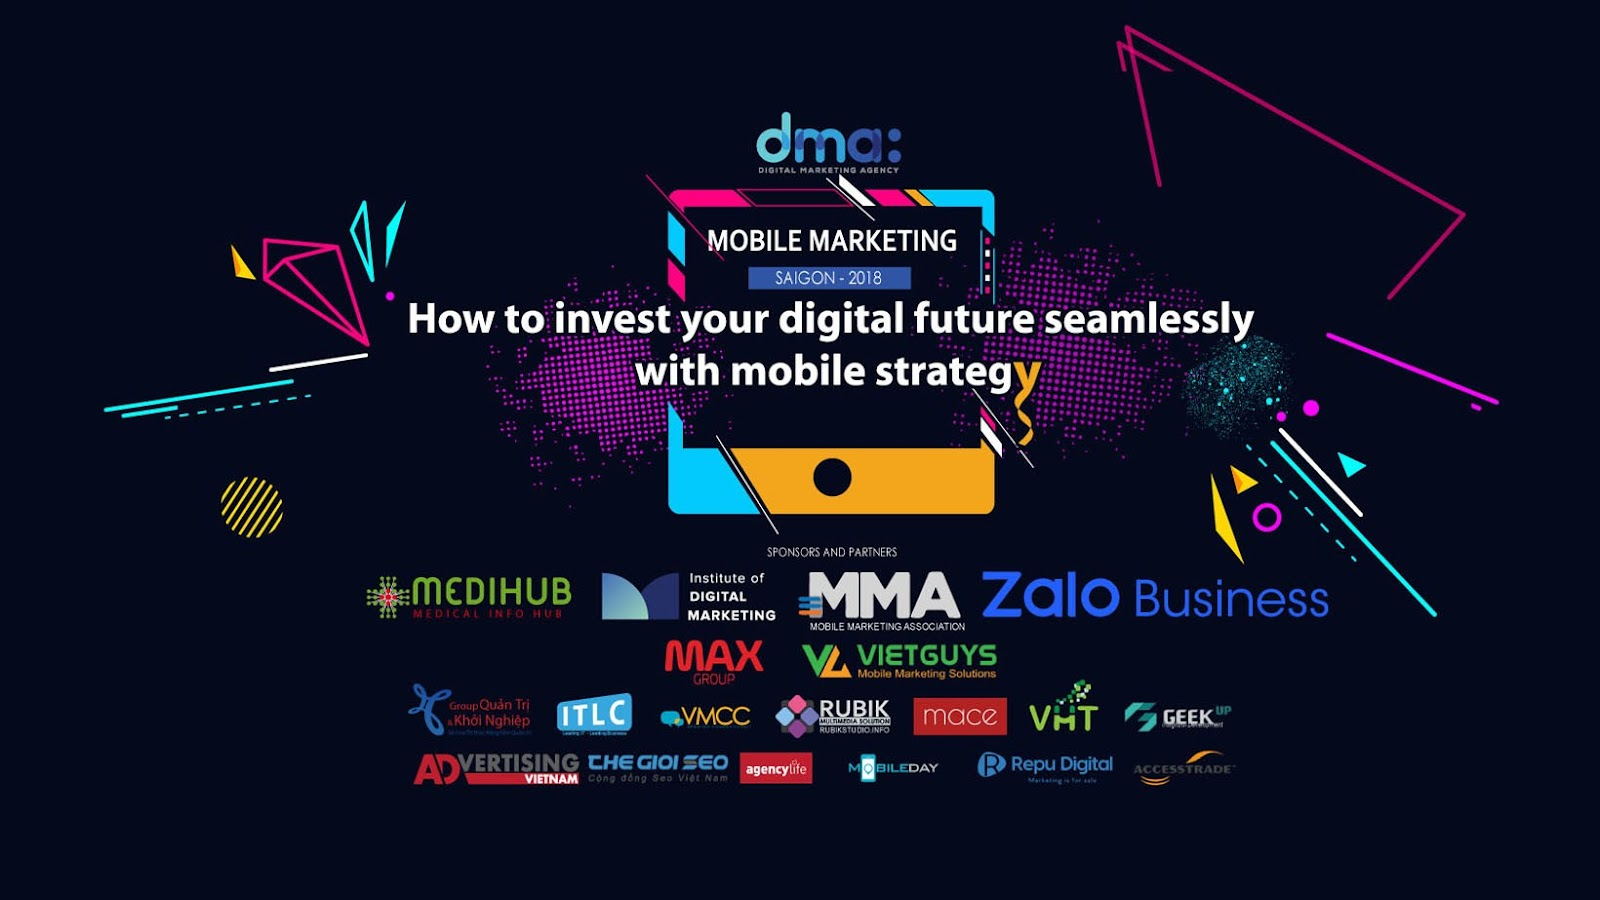 [Event] How to invest your digital future seamlessly with mobile strategy?